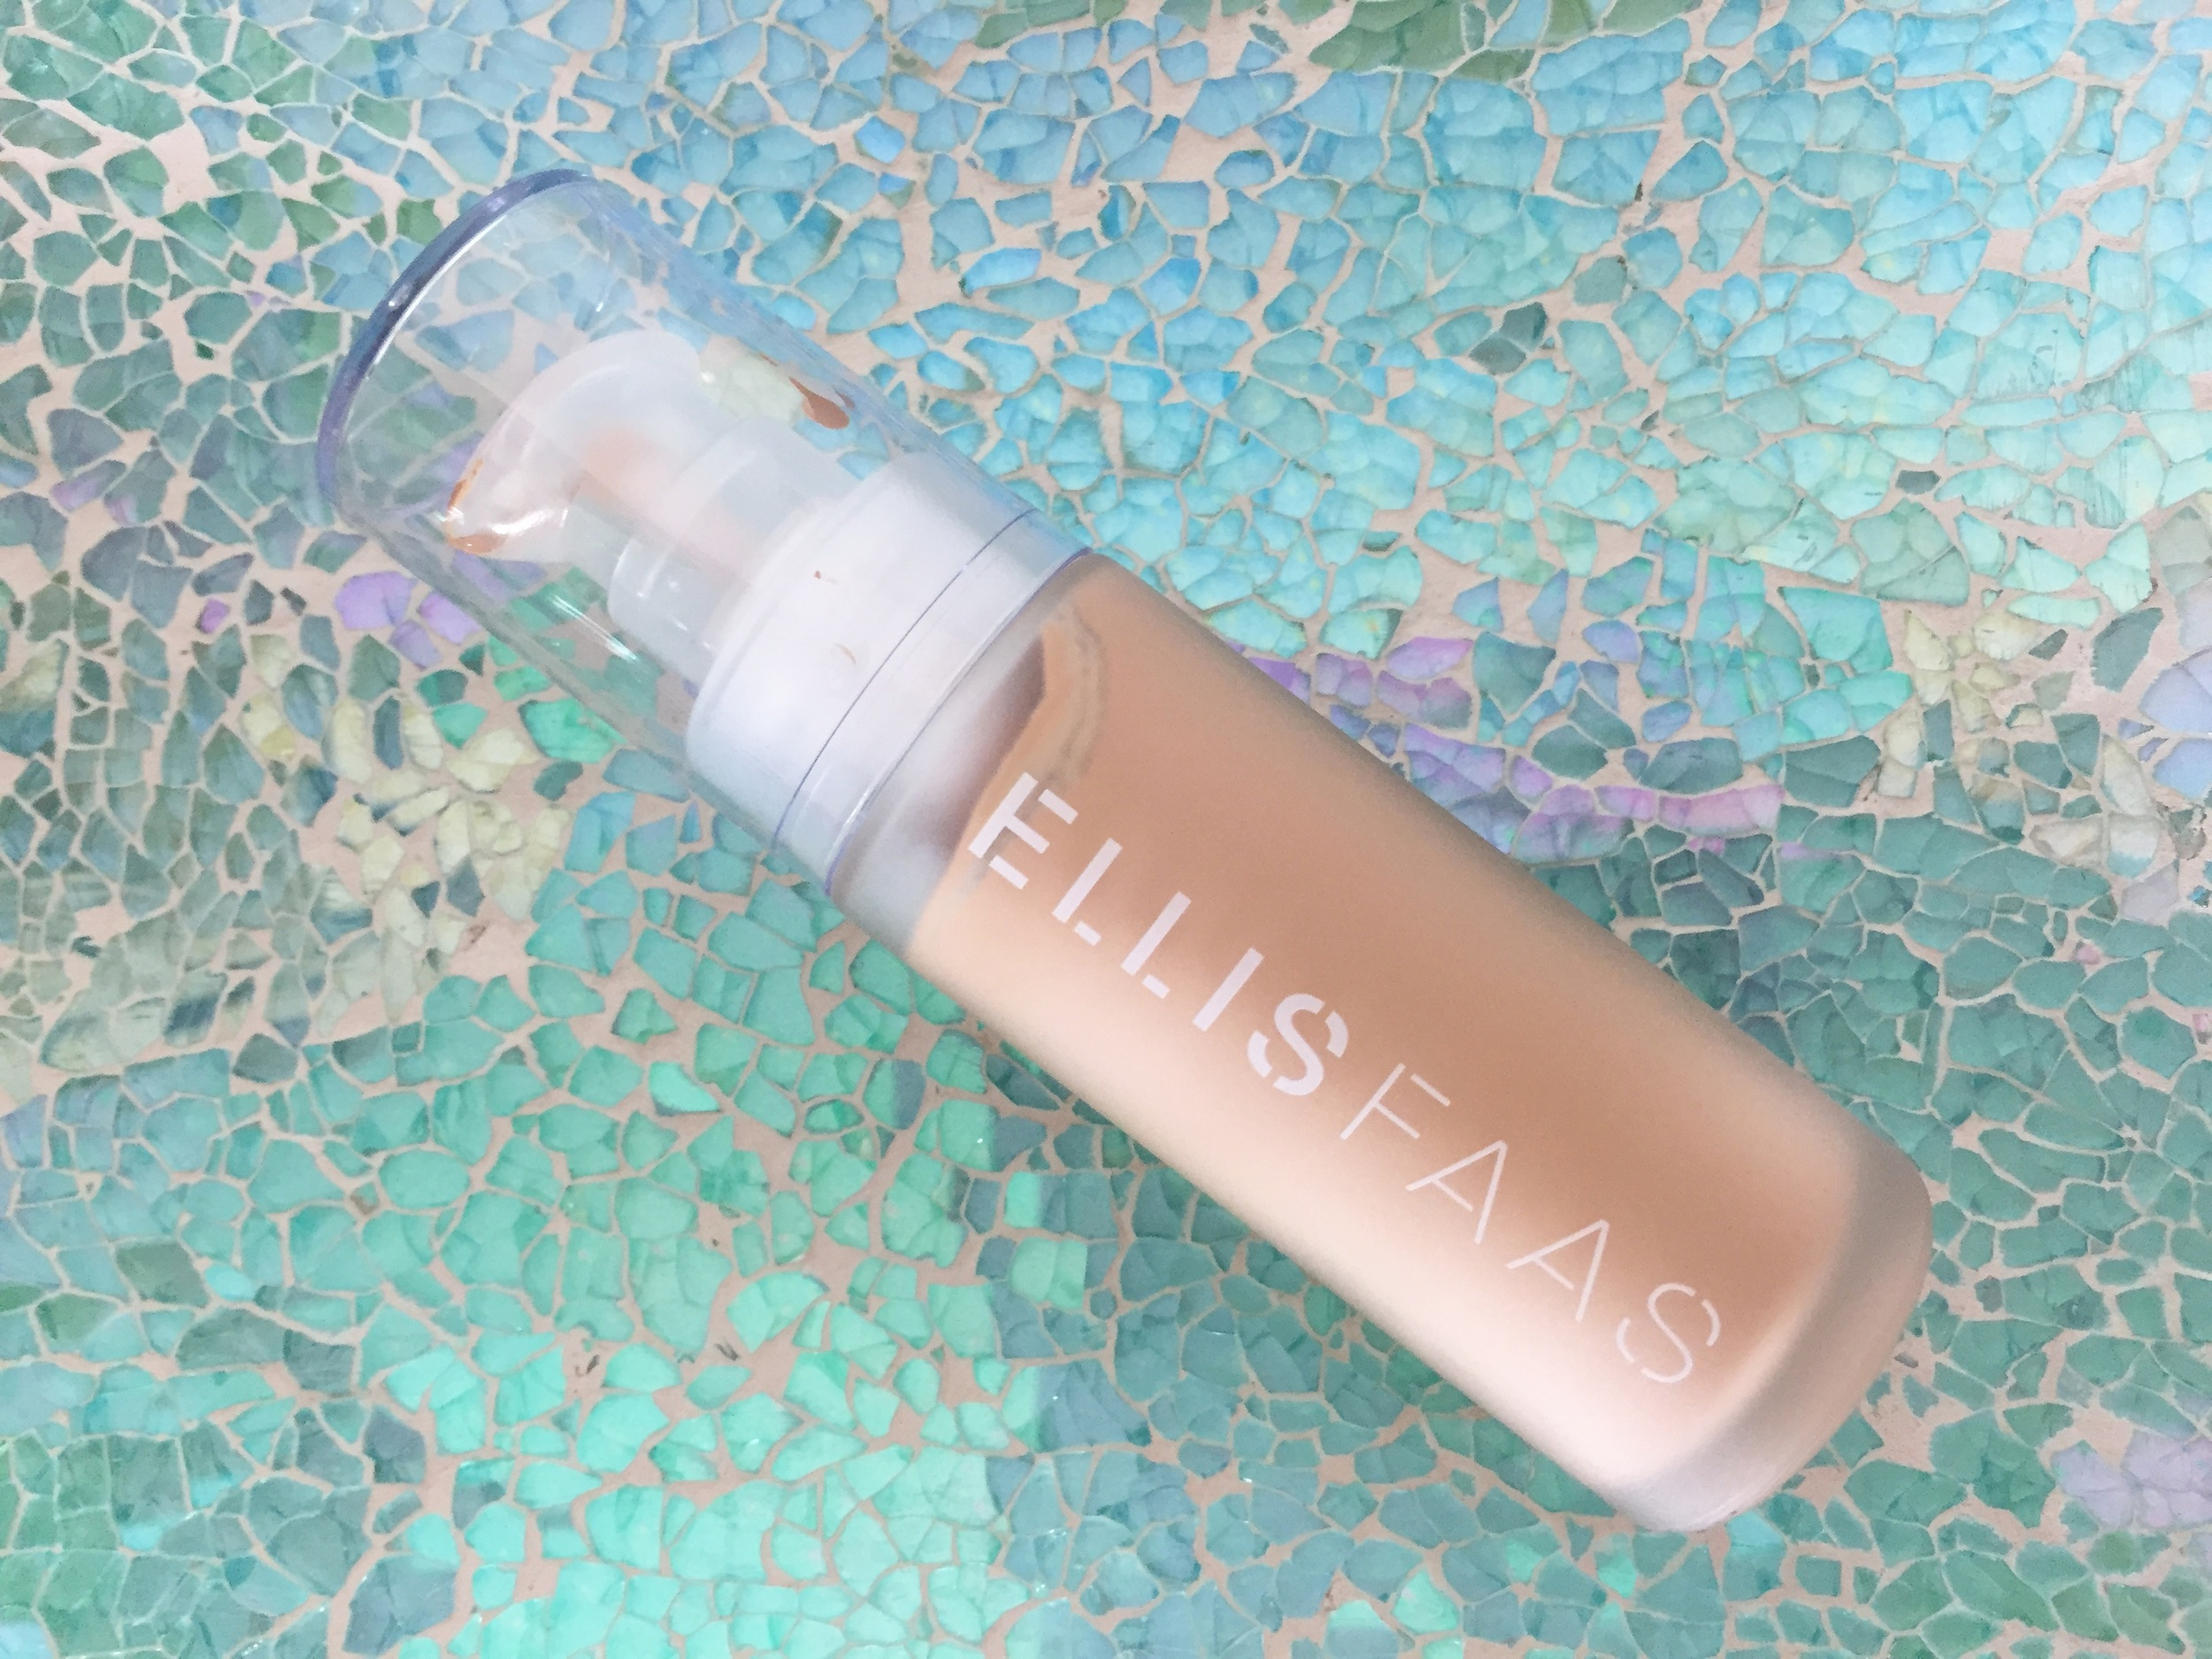 Ellis Faas Skin Veil Foundation S104 Review